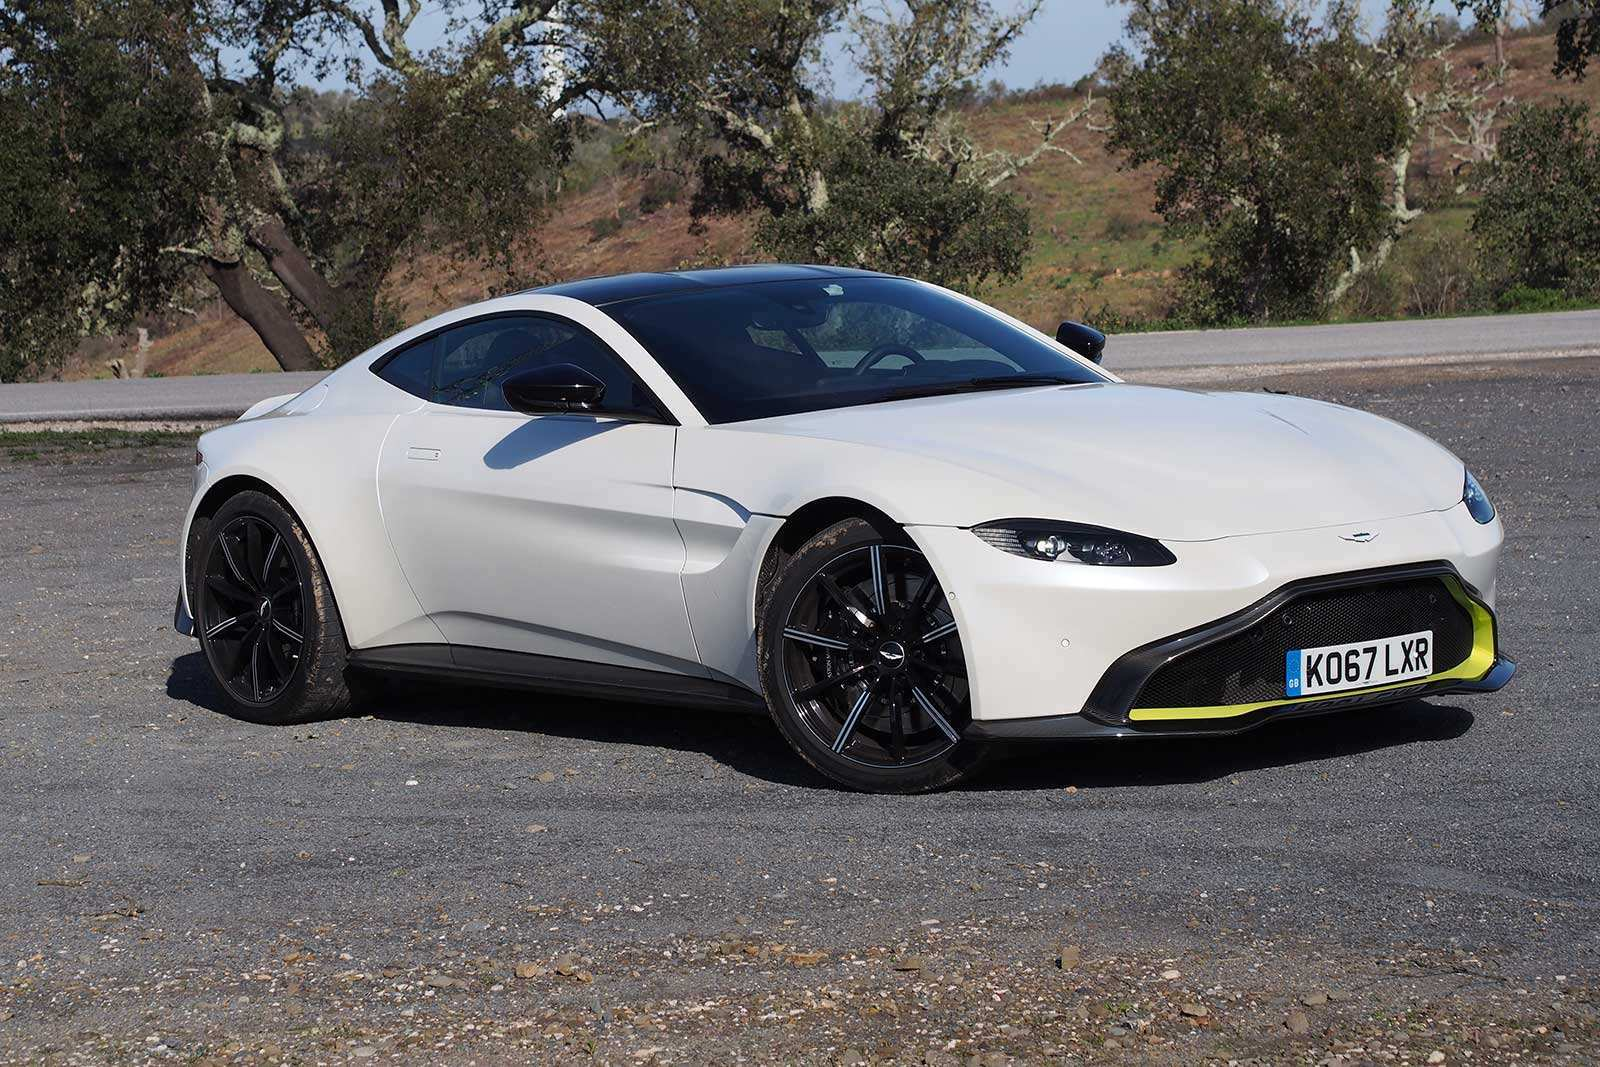 50 Gallery of 2019 Aston Martin Vantage Review Overview for 2019 Aston Martin Vantage Review